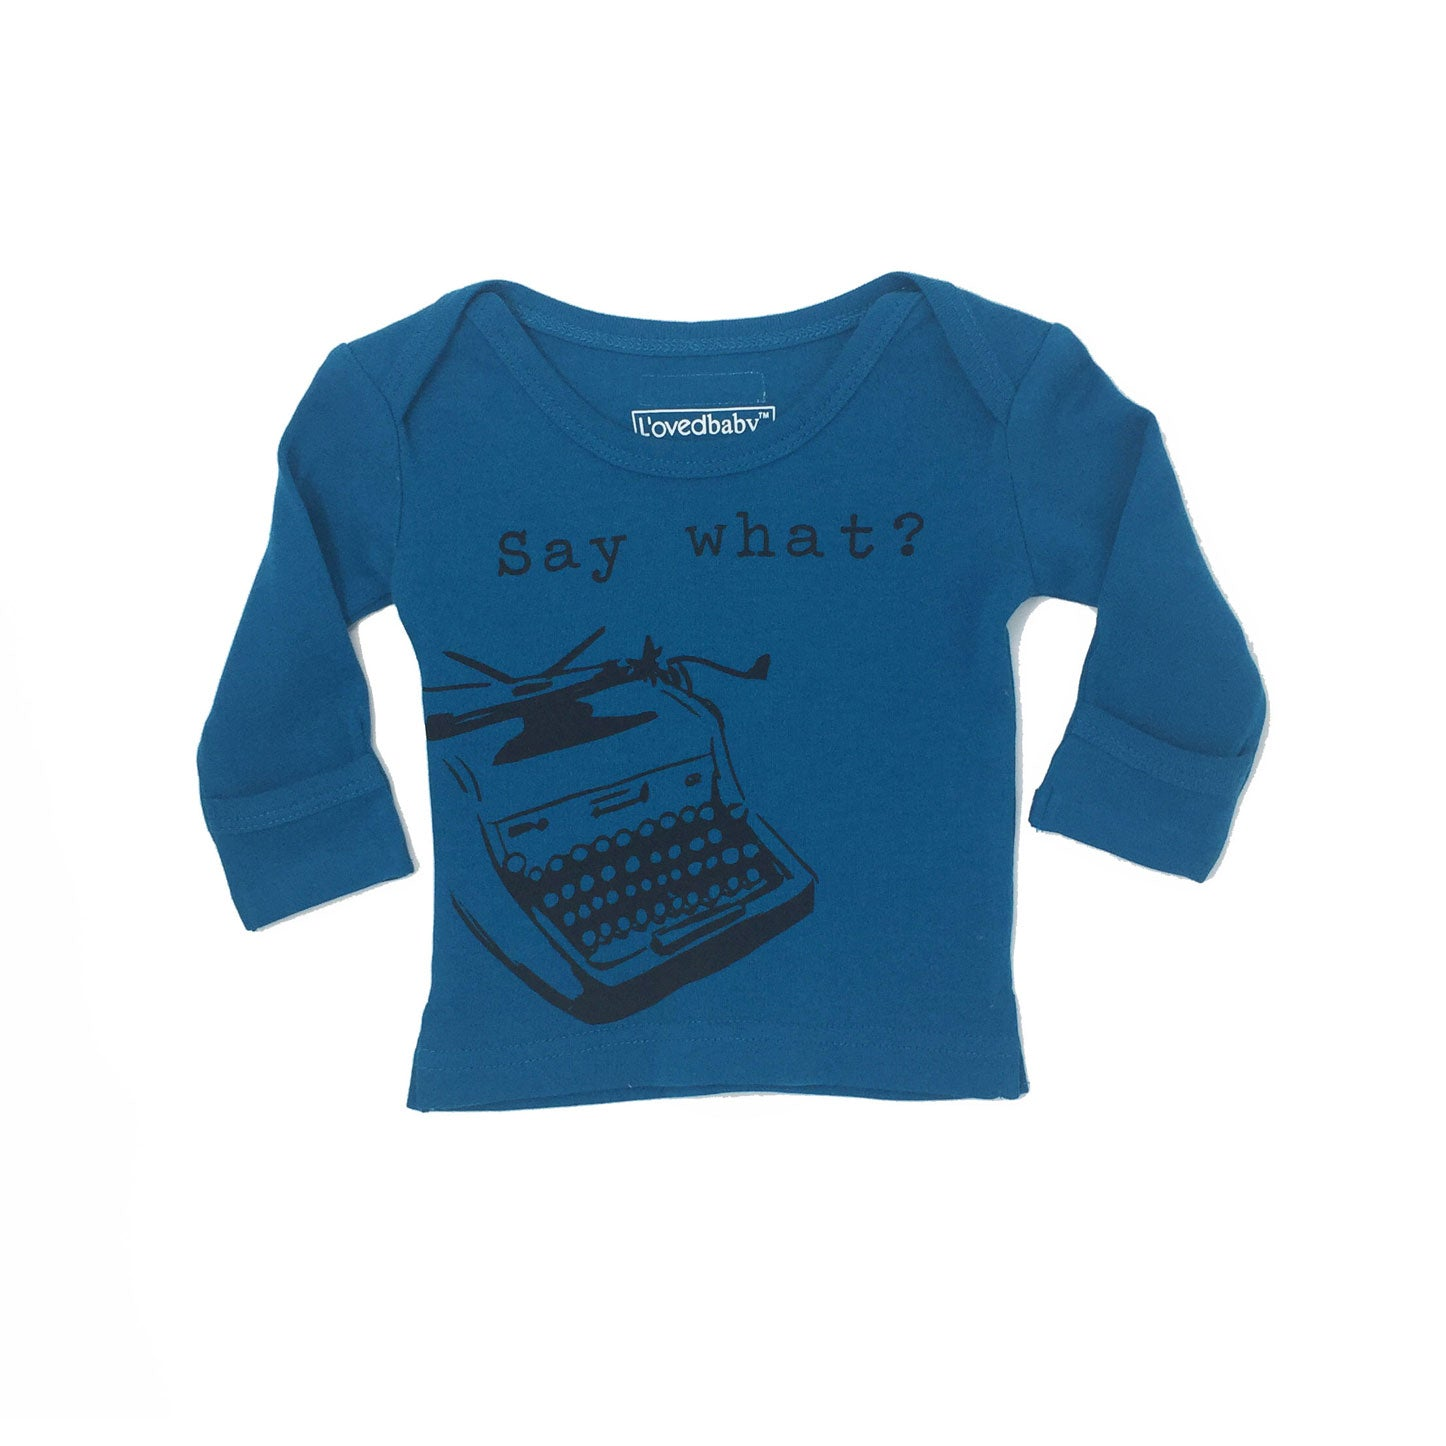 L'ovedbaby Lake Say What? Lap Tee